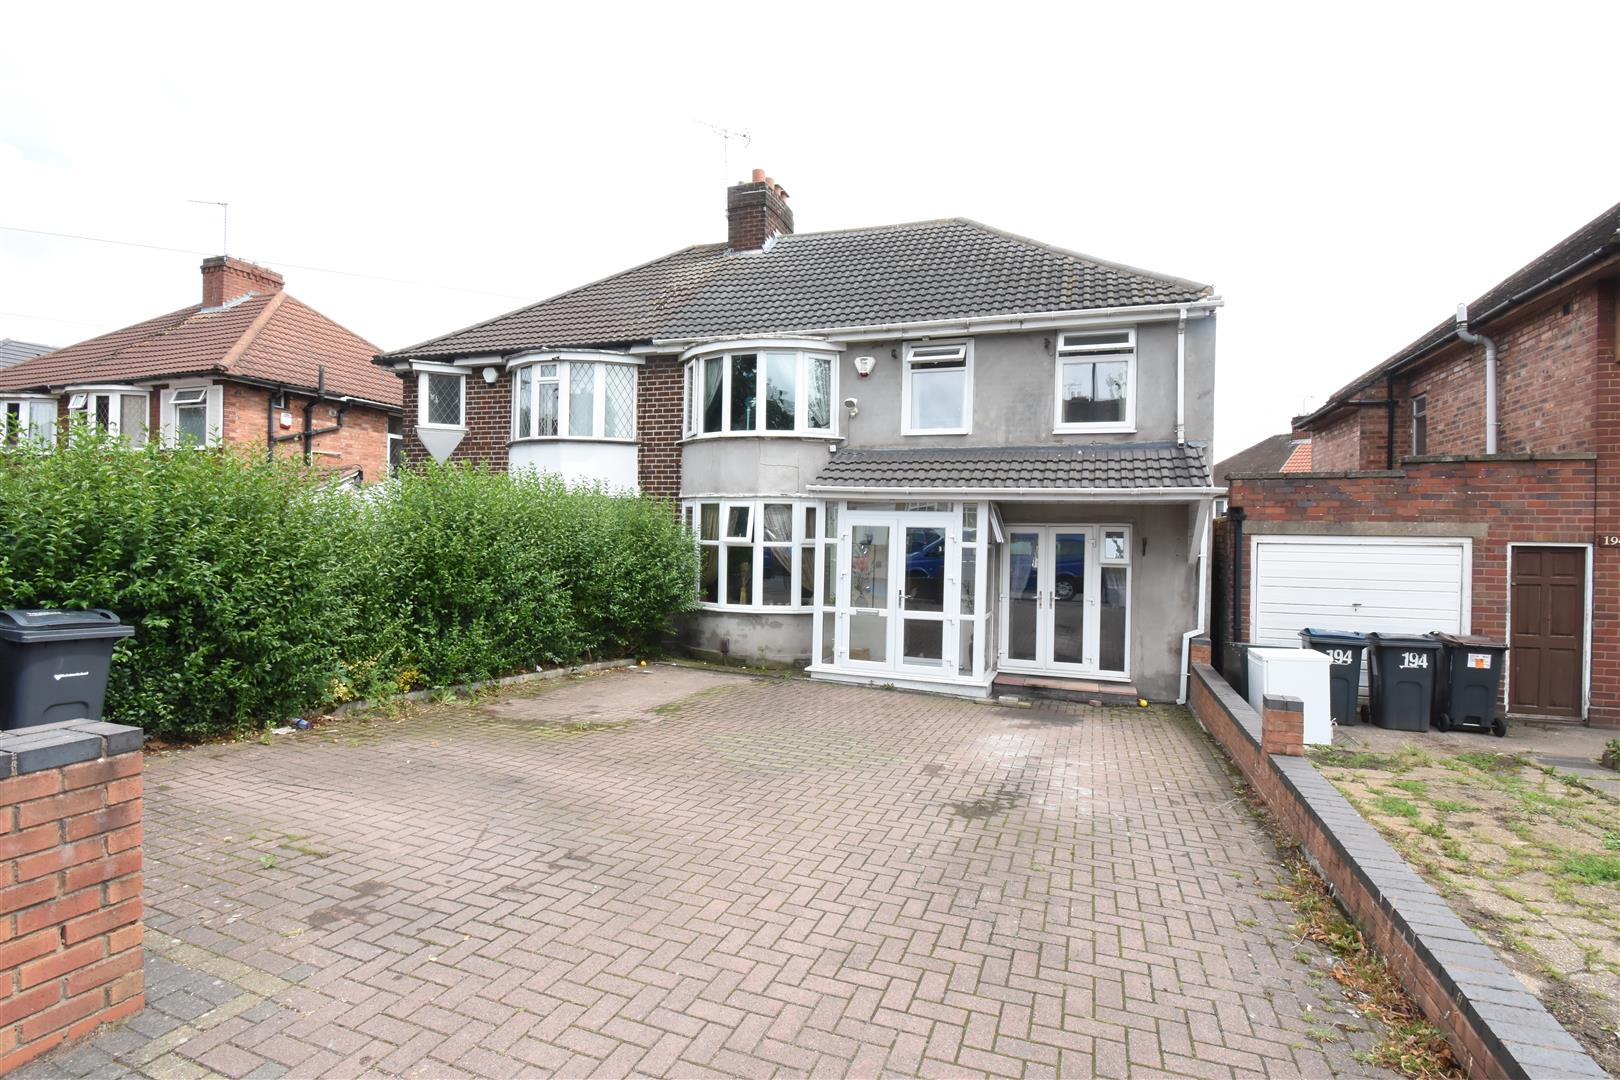 4 bed house for sale in 196 Stechford Road, Hodge Hill, Birmingham, B34